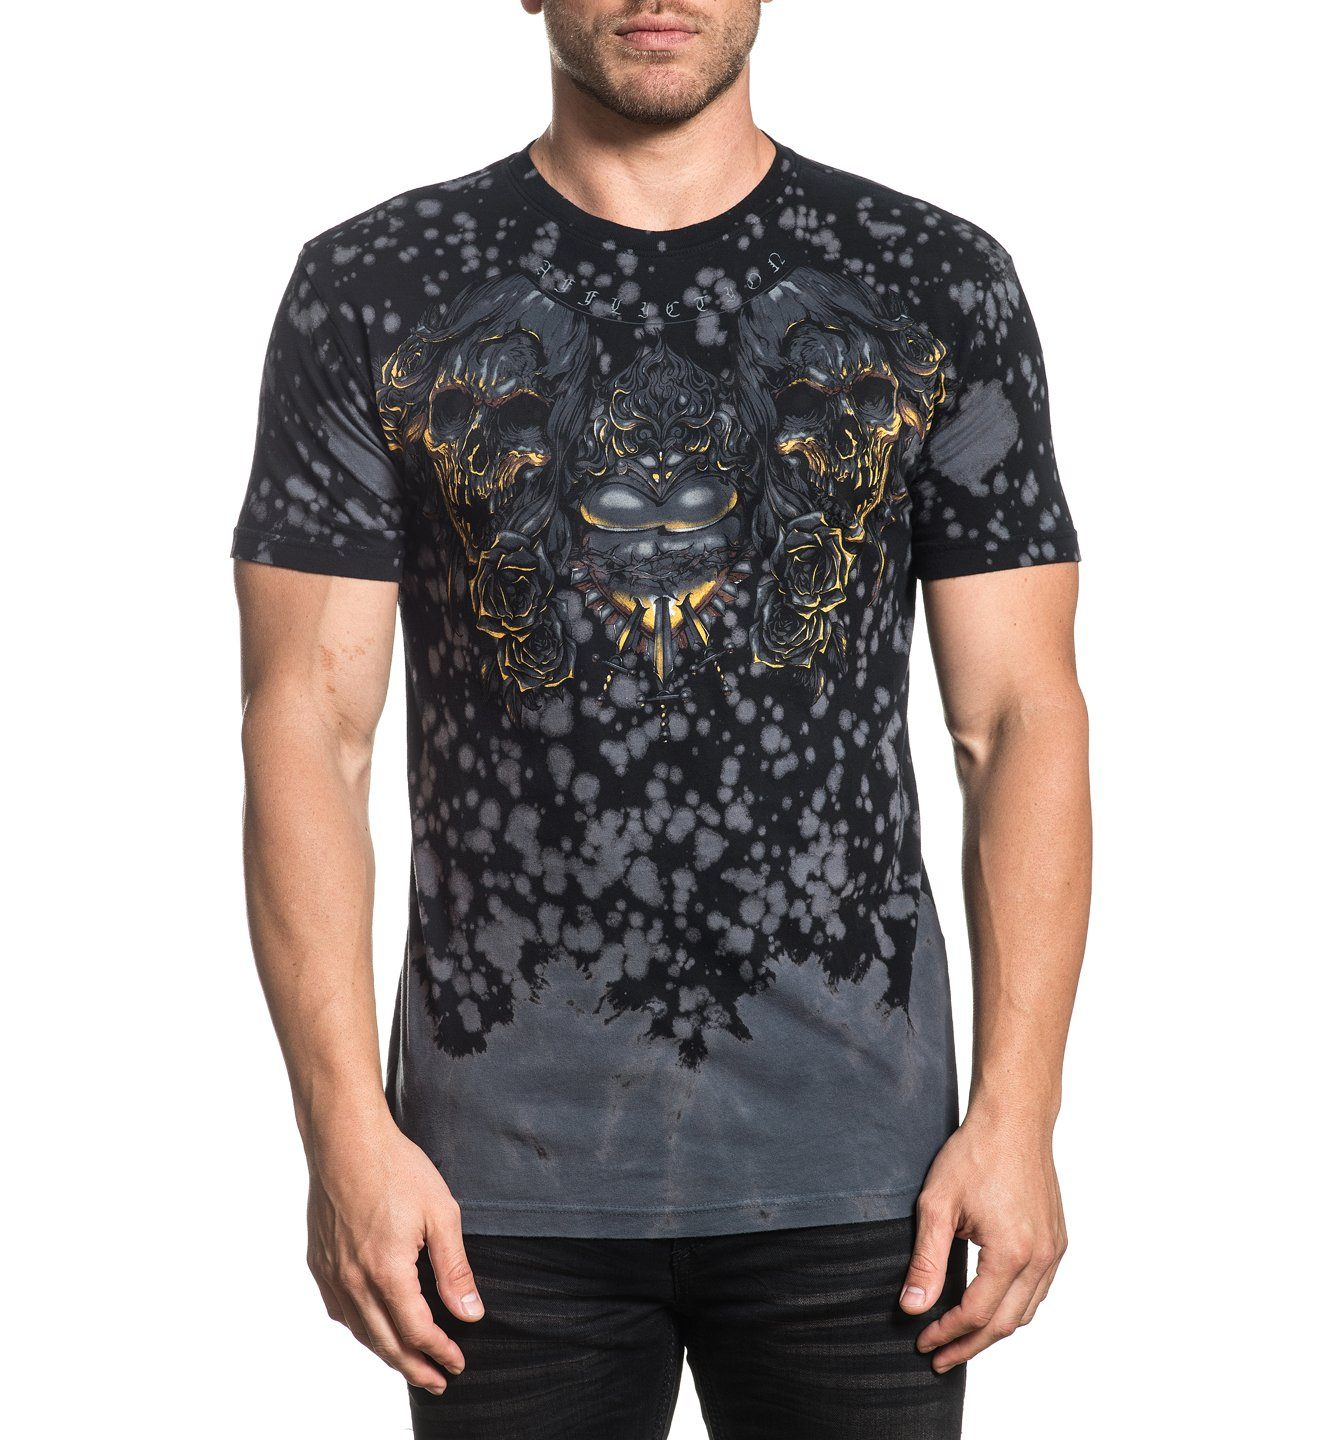 Forged In Fire - Mens Short Sleeve Tees - Affliction Clothing